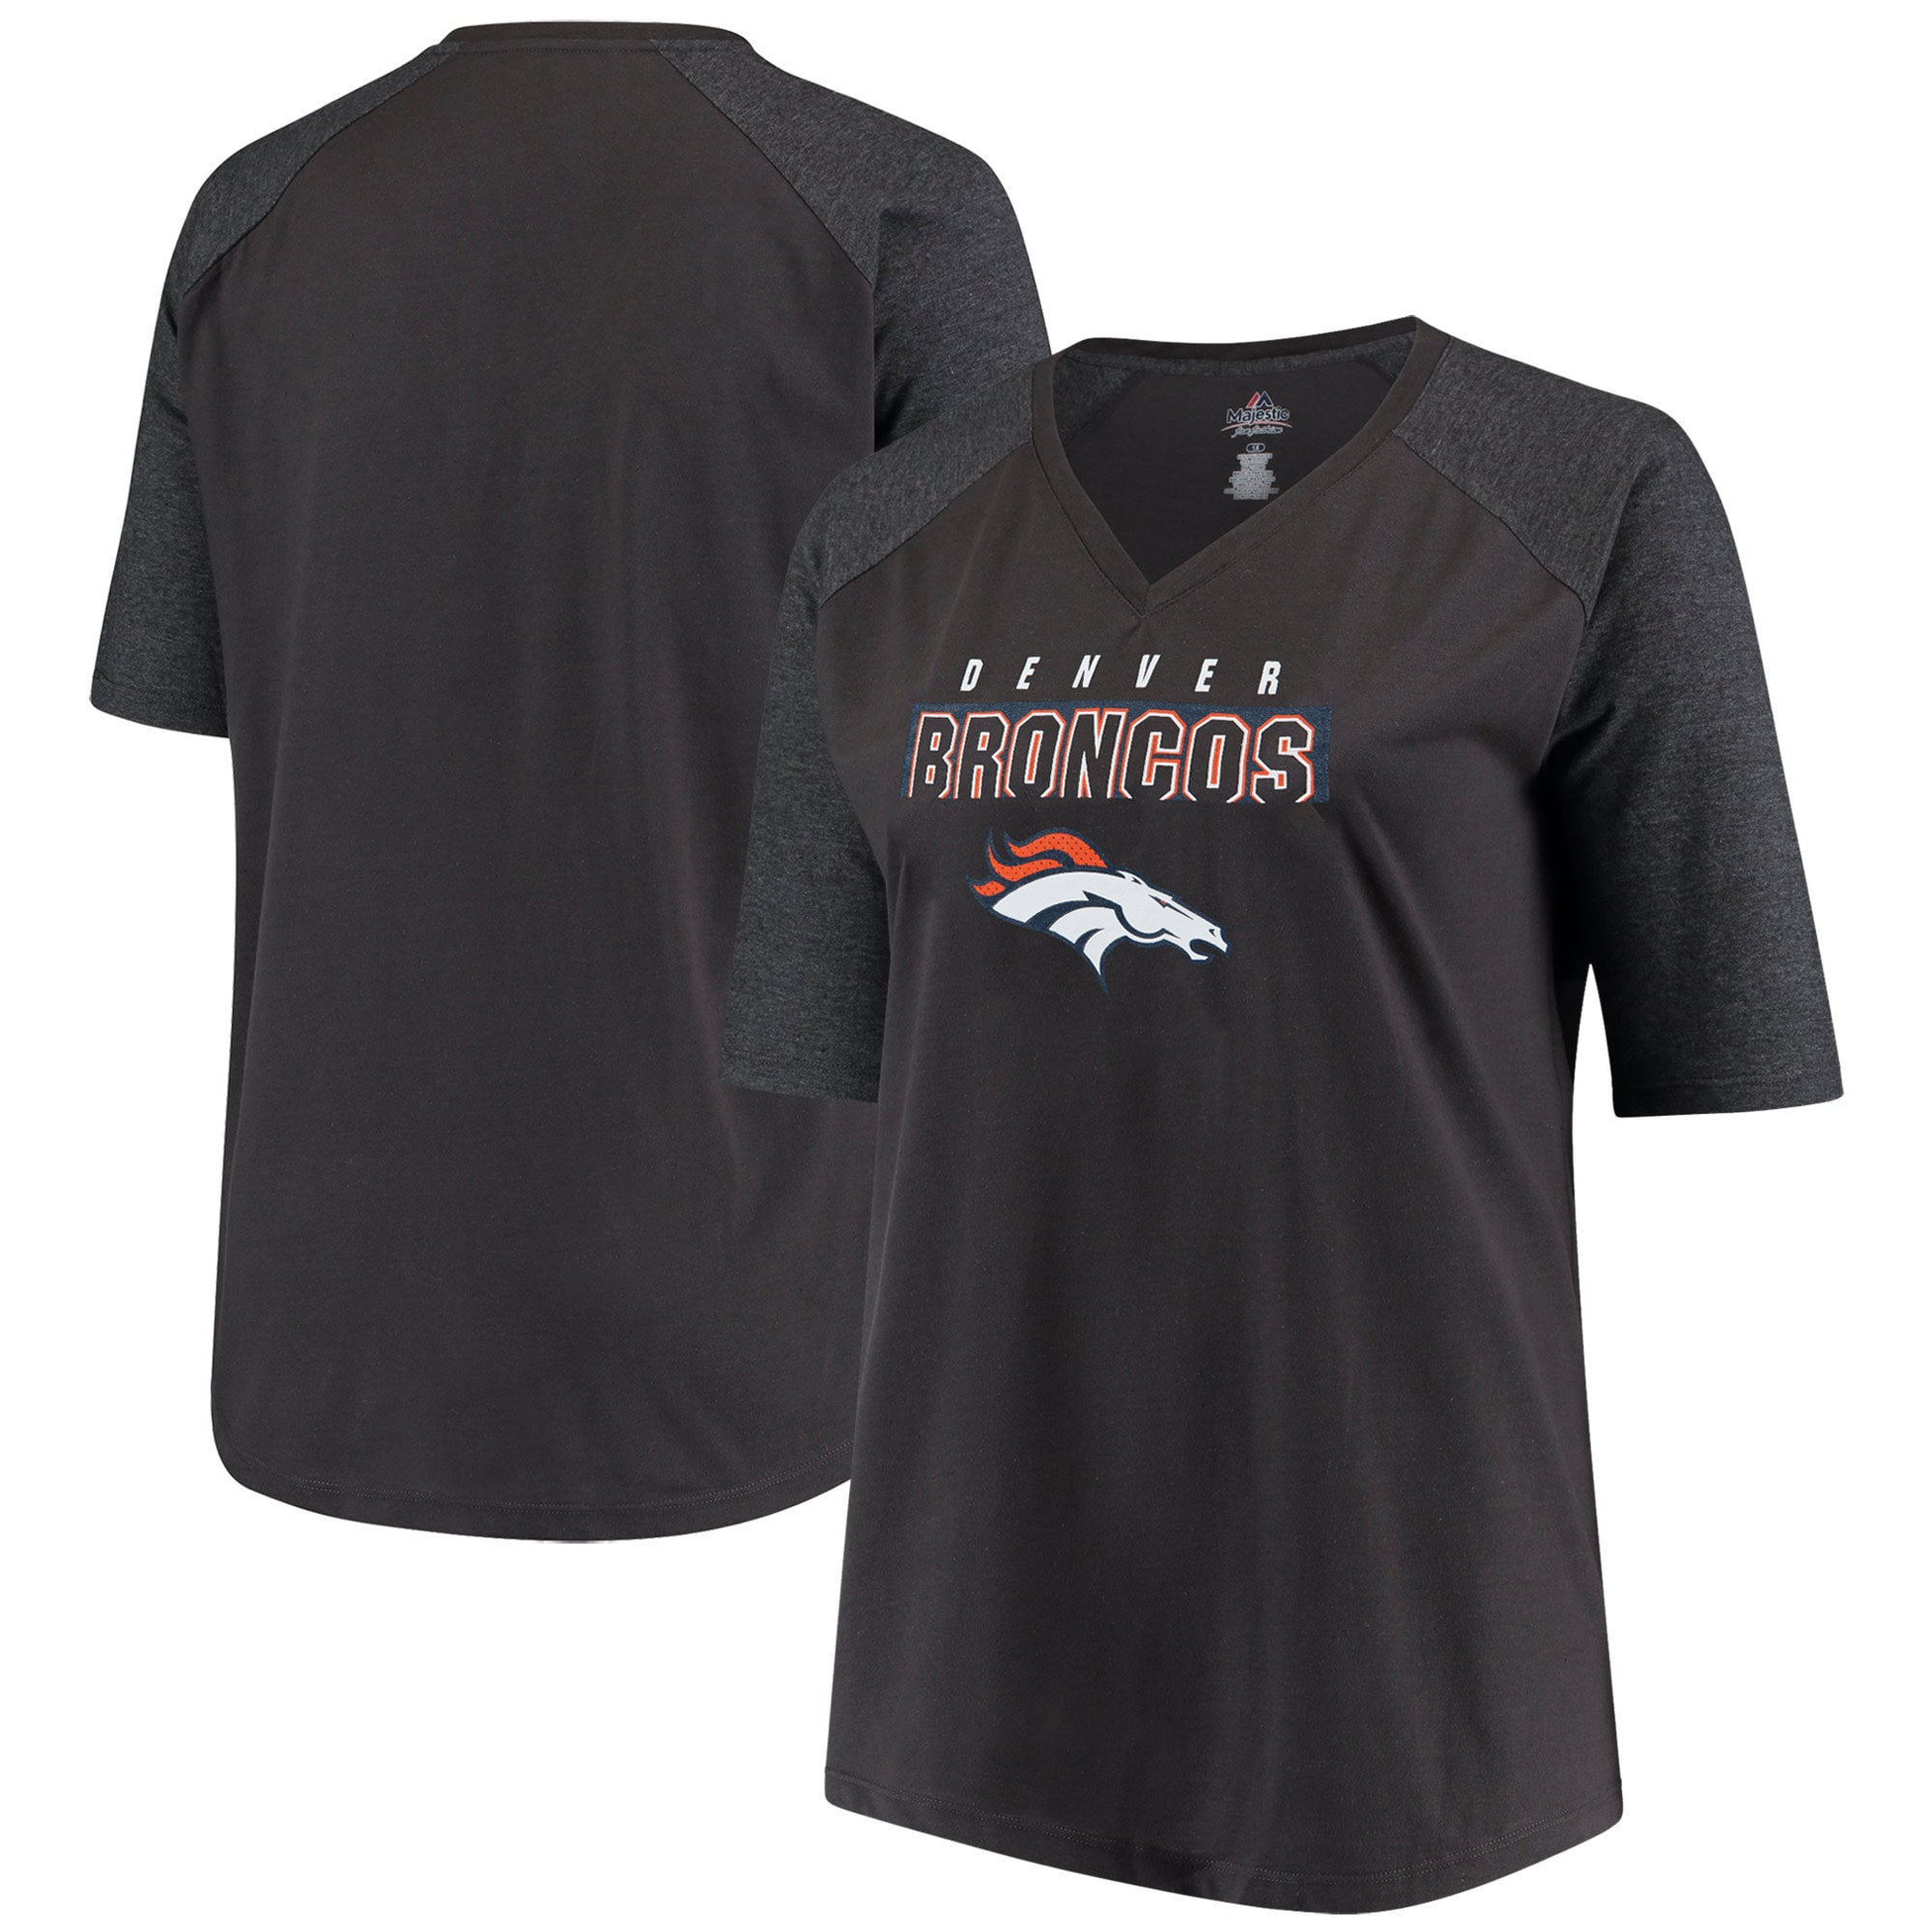 Denver Broncos Majestic Women's Plus Size Team Logo Half-Sleeve Raglan V-Neck T-Shirt - Charcoal/Heathered Gray